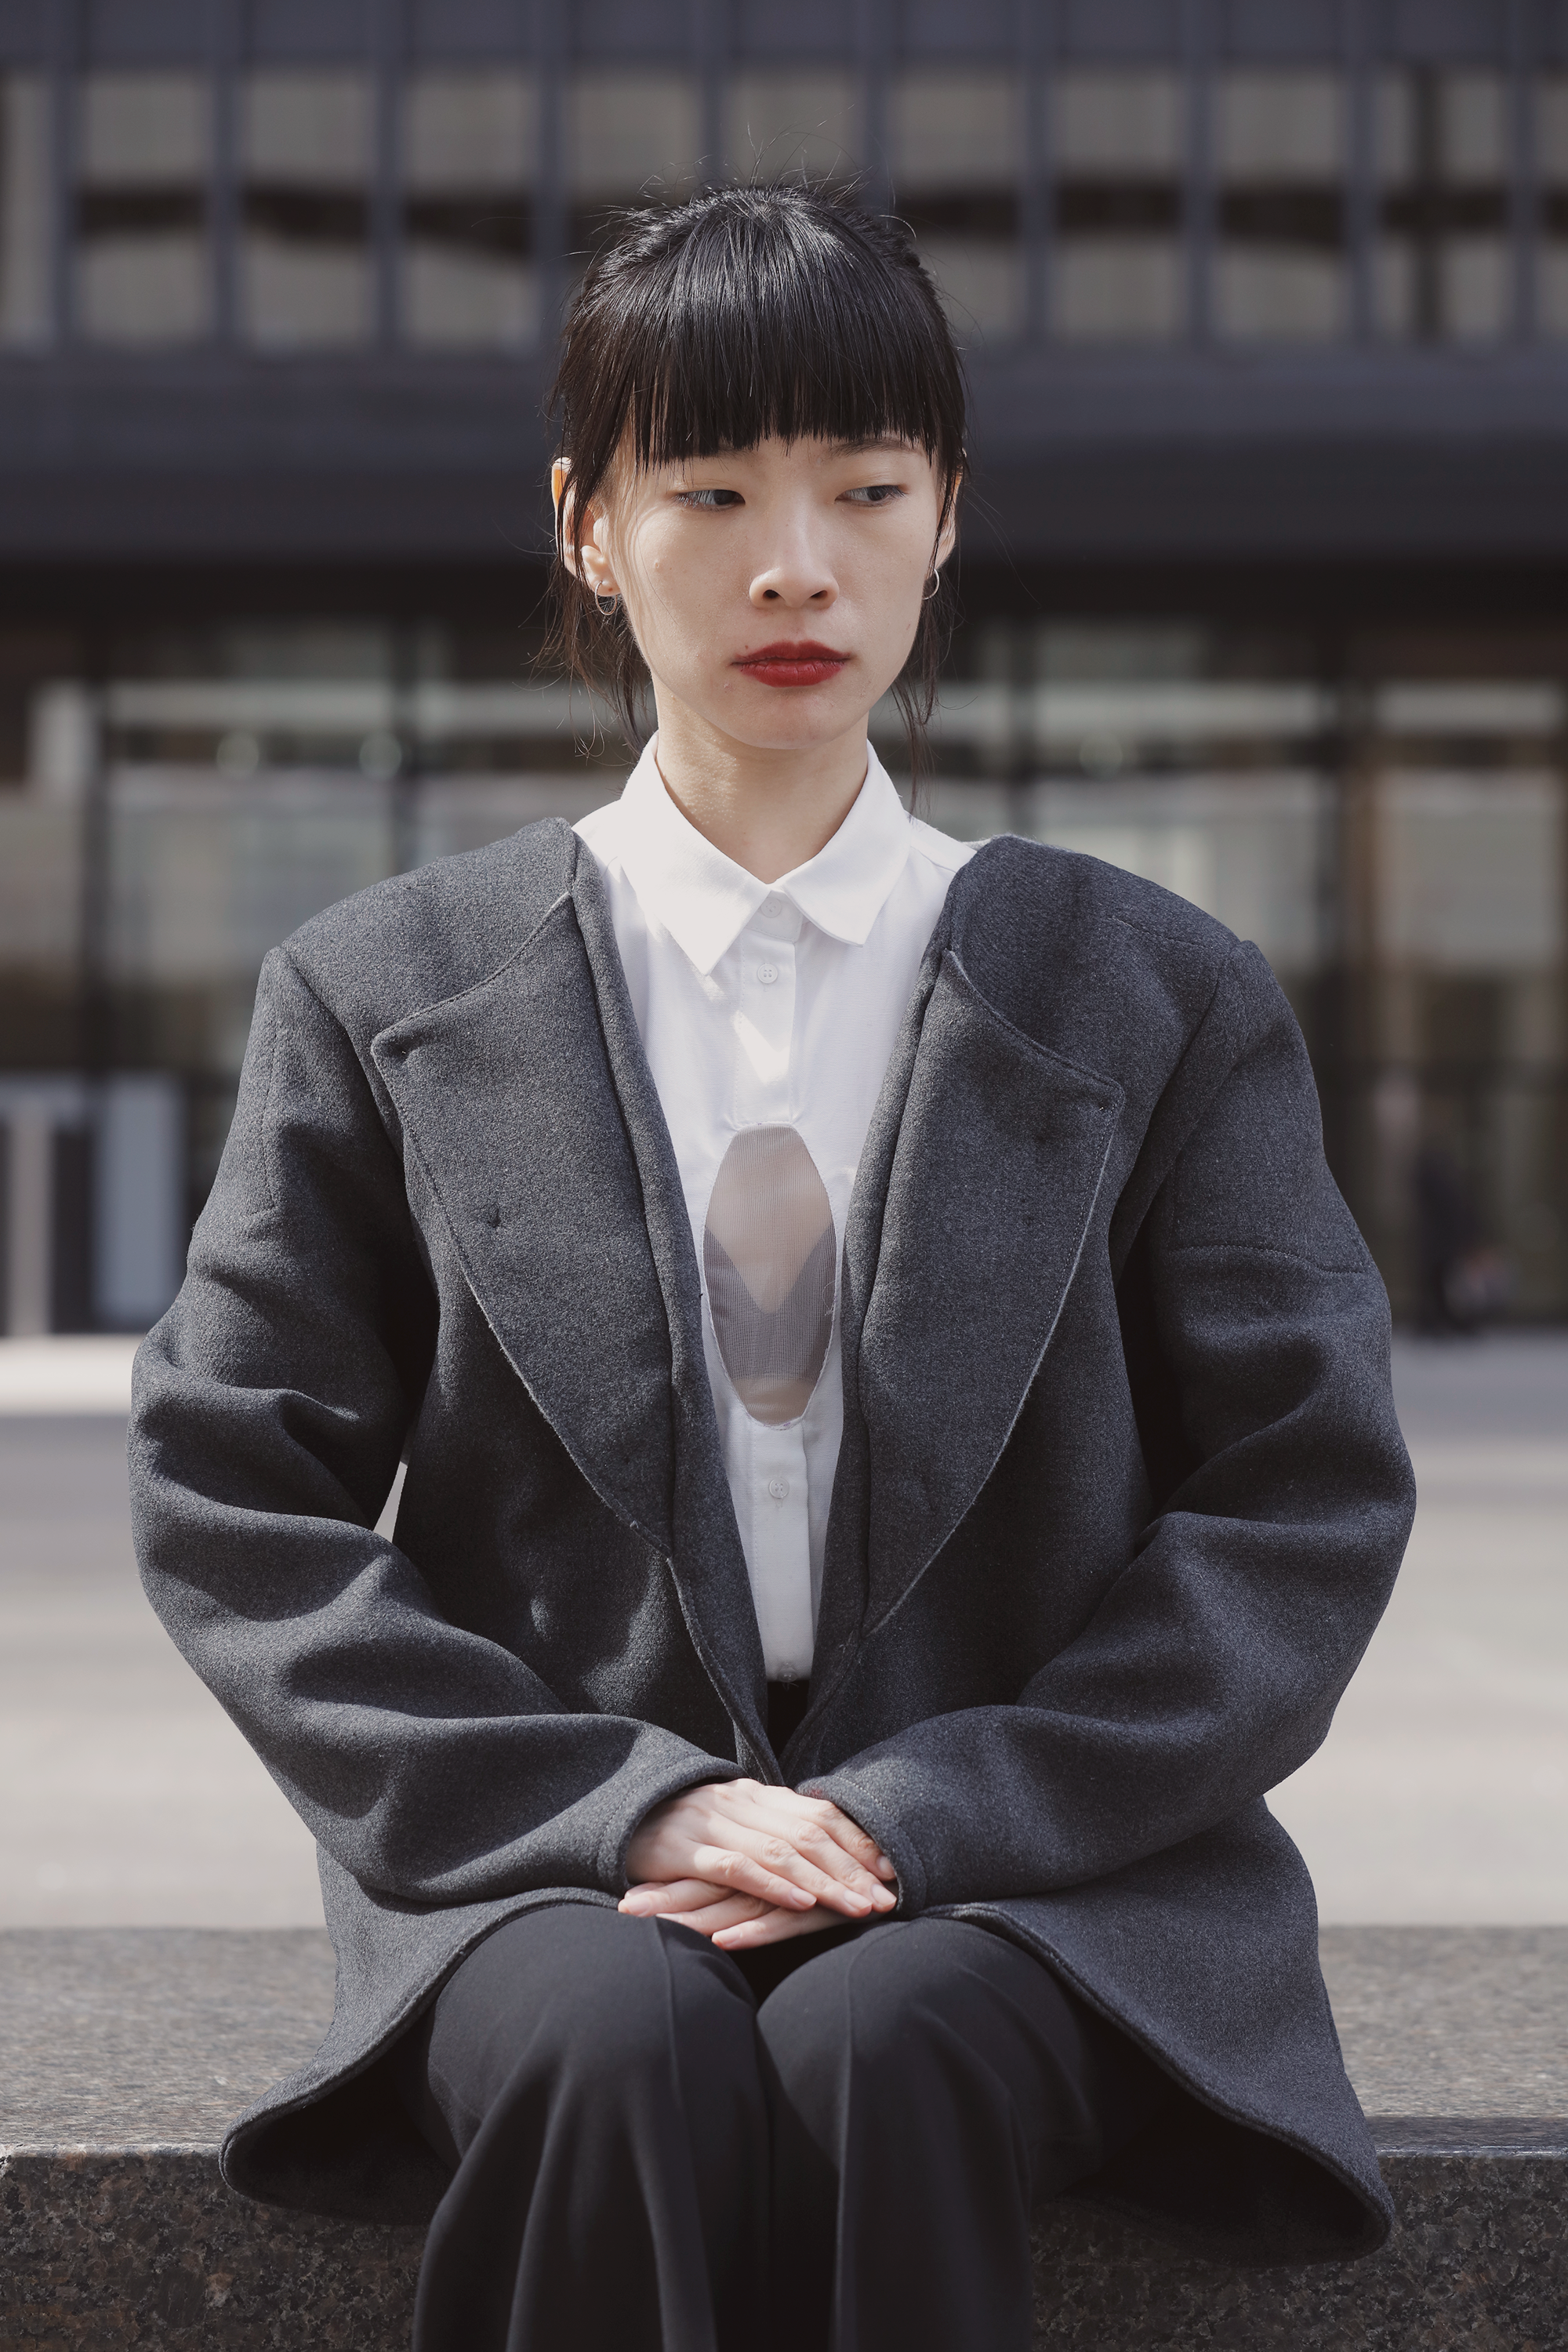 hormone lapel - the lapel opens when the wearer gets nervous and starts to sweat during an interviewit seduces the interviewer to the sexual image of a fantasized Asian